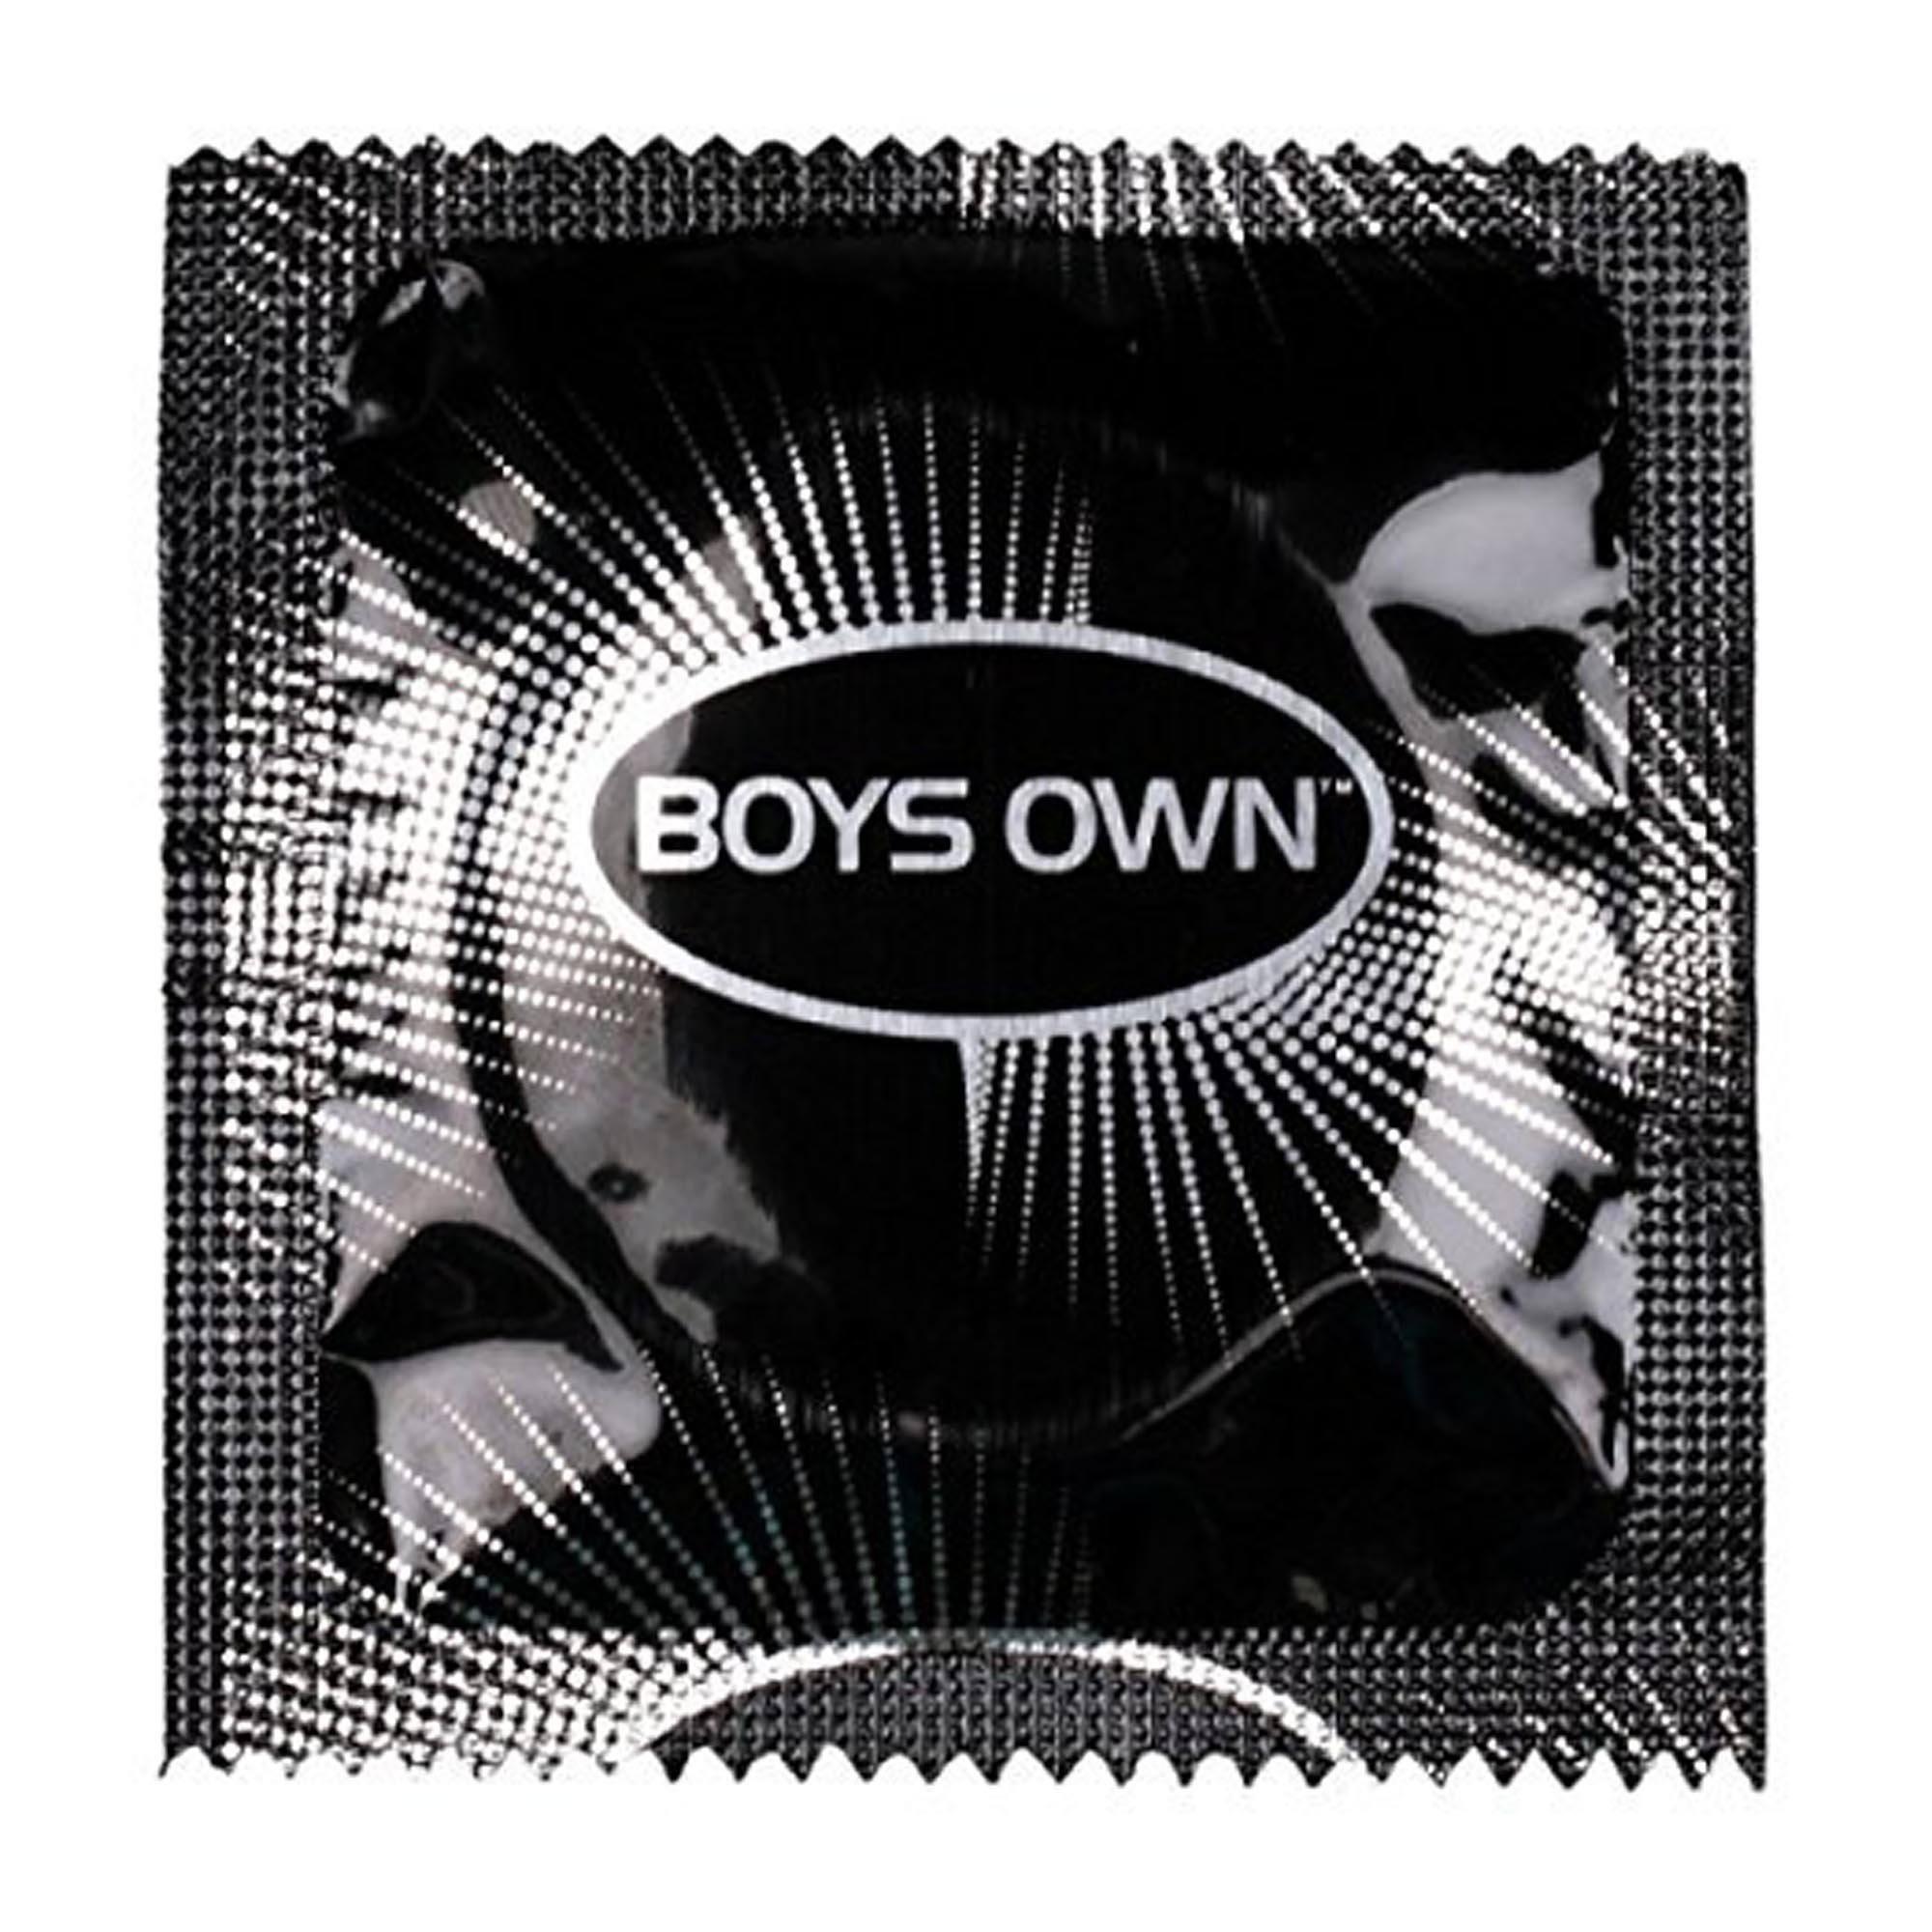 Apologise, Best condoms for anal penetration